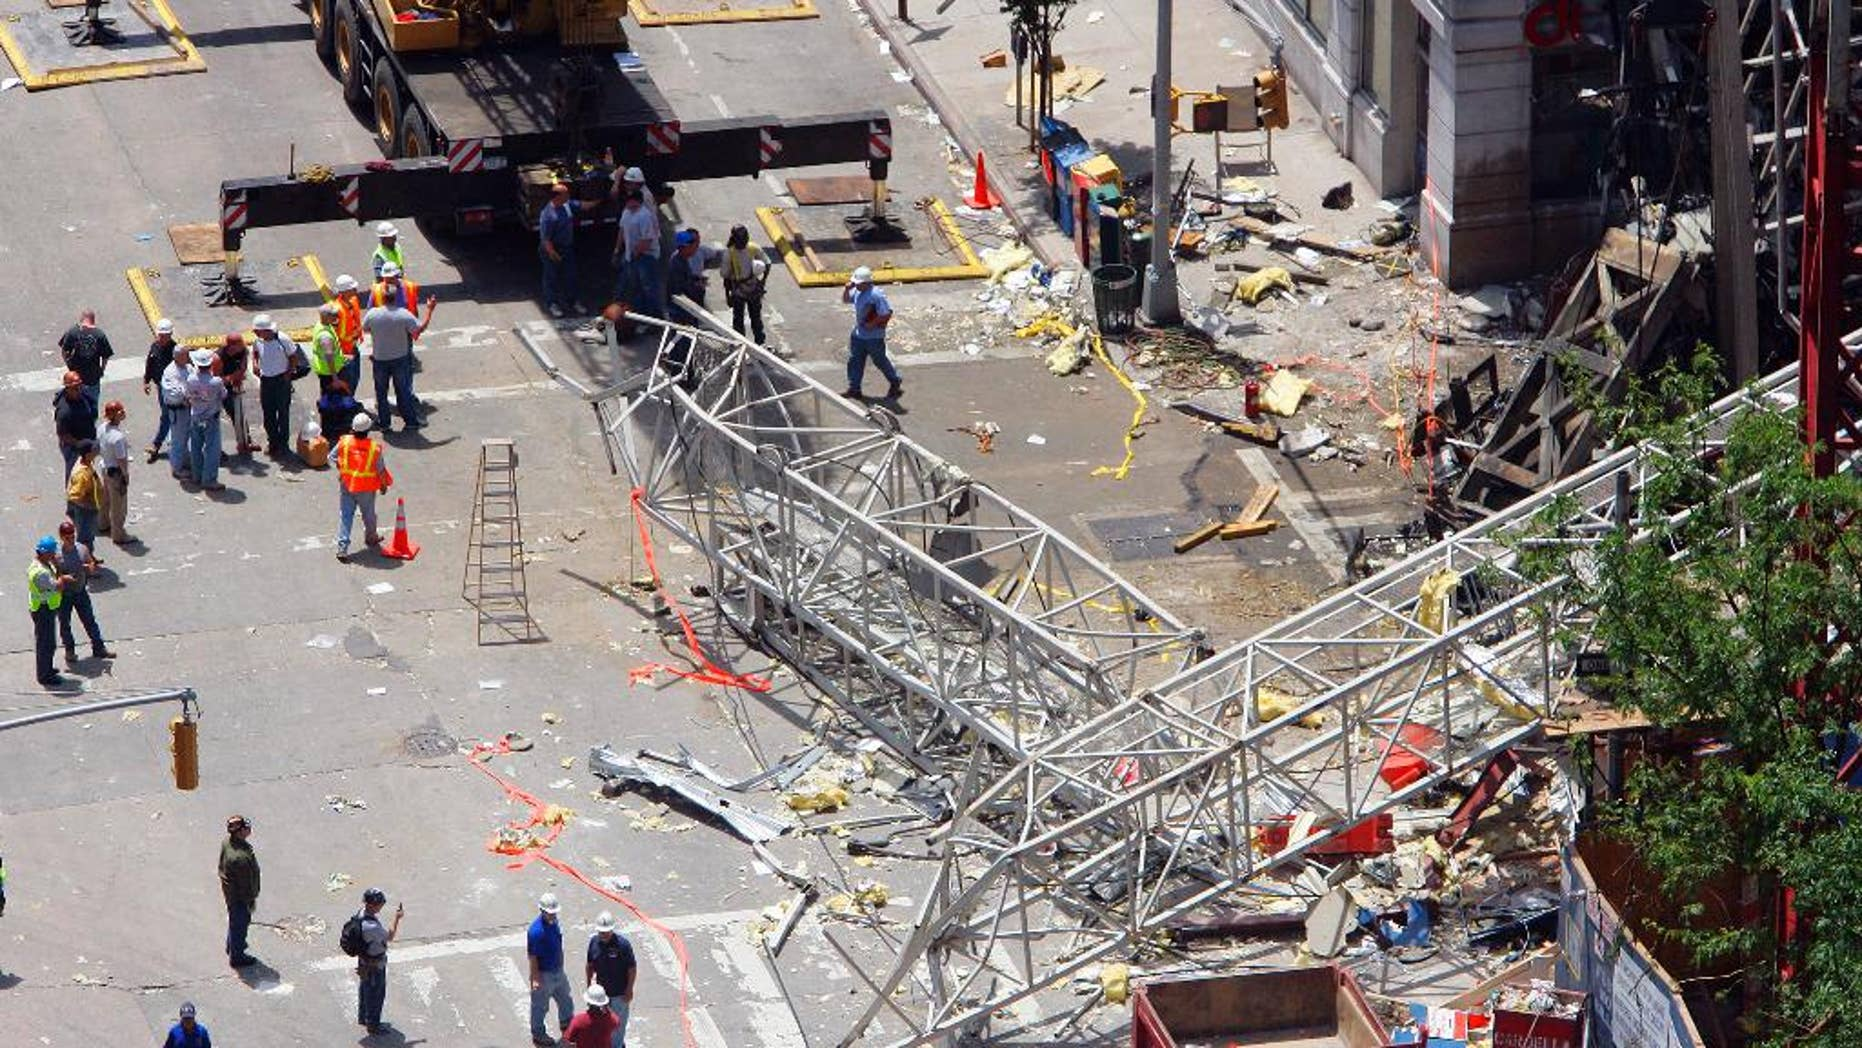 FILE - In this May 30, 2008 file photo, crews work at the scene of a crane collapse on the Upper East Side of New York. The New York City construction crane owner who was acquitted of manslaughter in a collapse that killed two workers has gone on trial again in a civil wrongful death case. Lawyers for the slain workers' families gave opening statements on Friday, May 23, 2014 in the trial of James Lomma, his company and others involved in the accident. (AP Photo/Stephen Chernin, File)